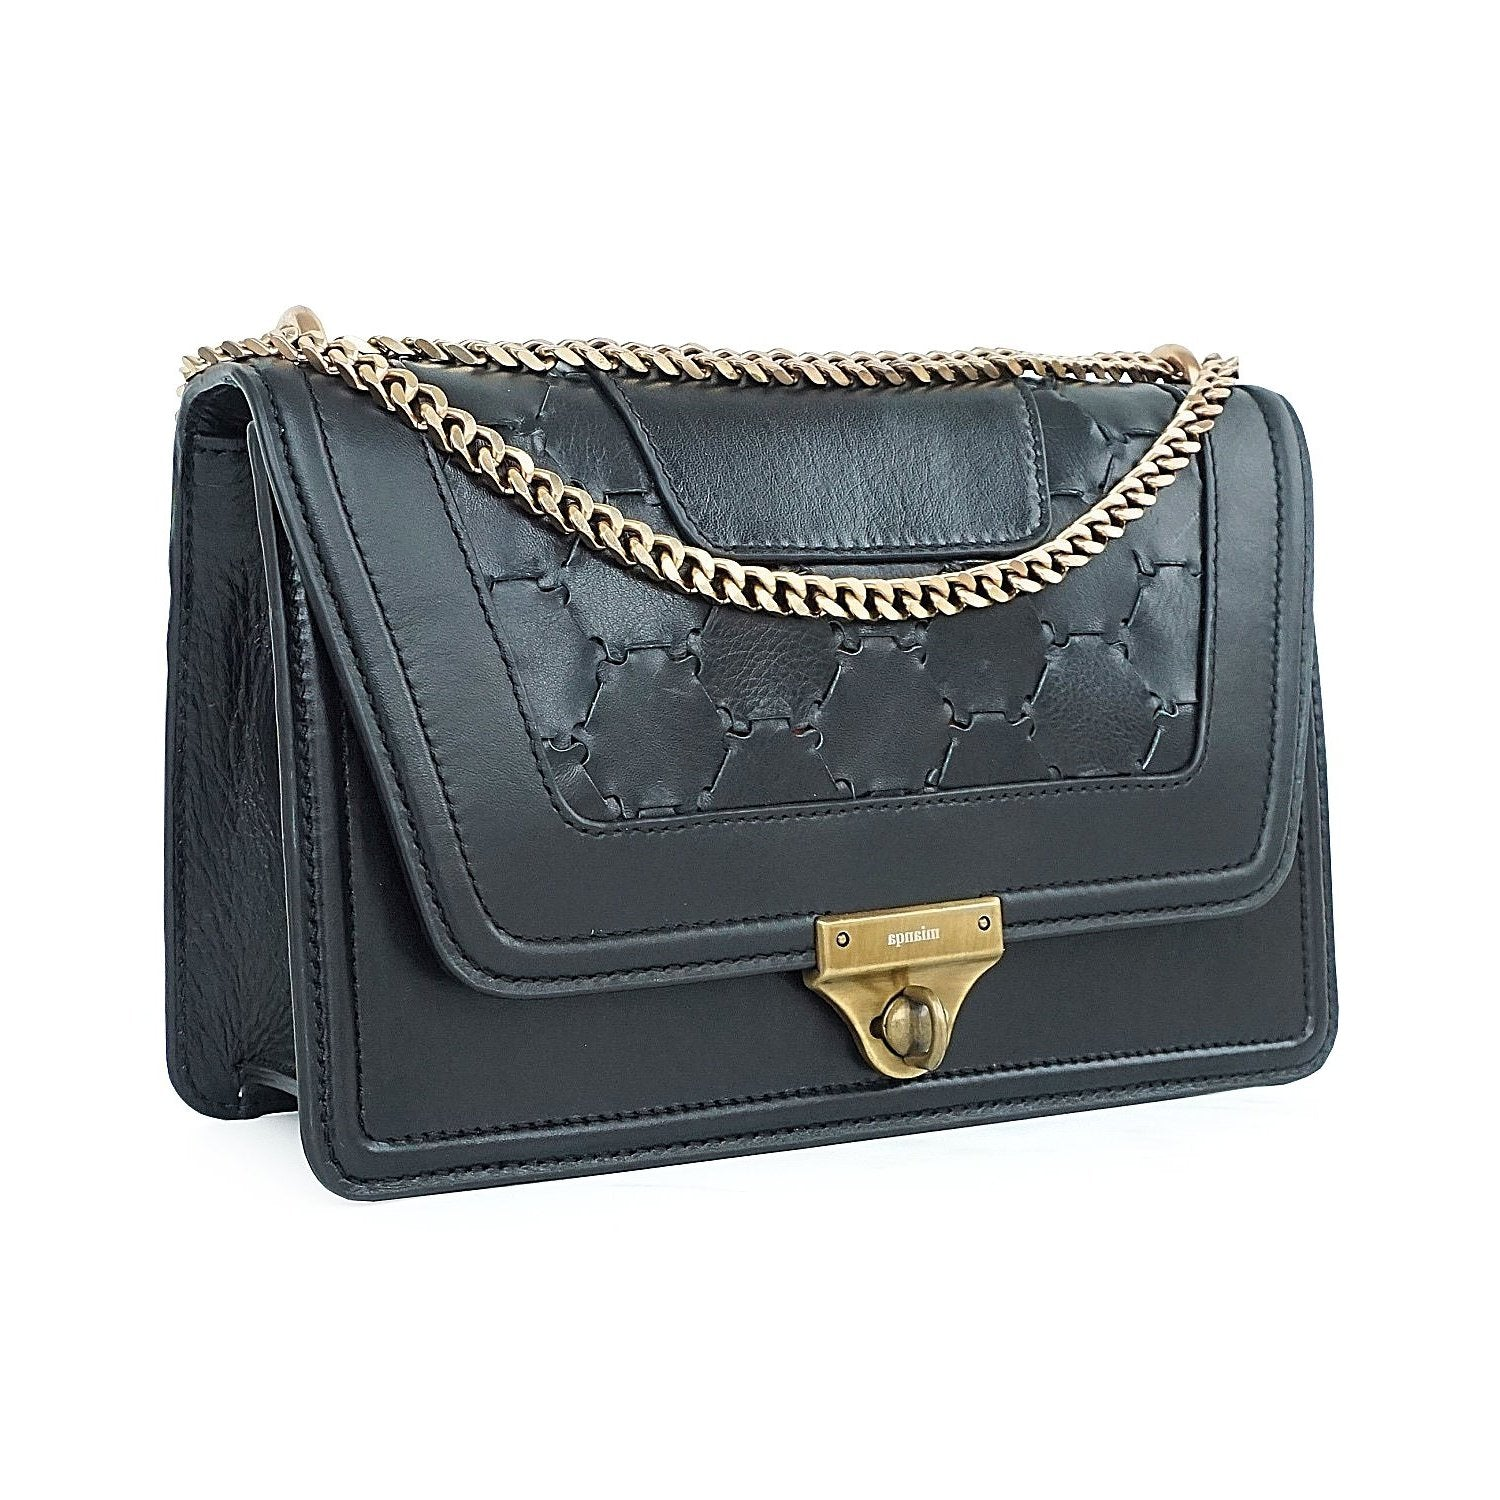 M U A L L A | Leather Shoulder Bag Black